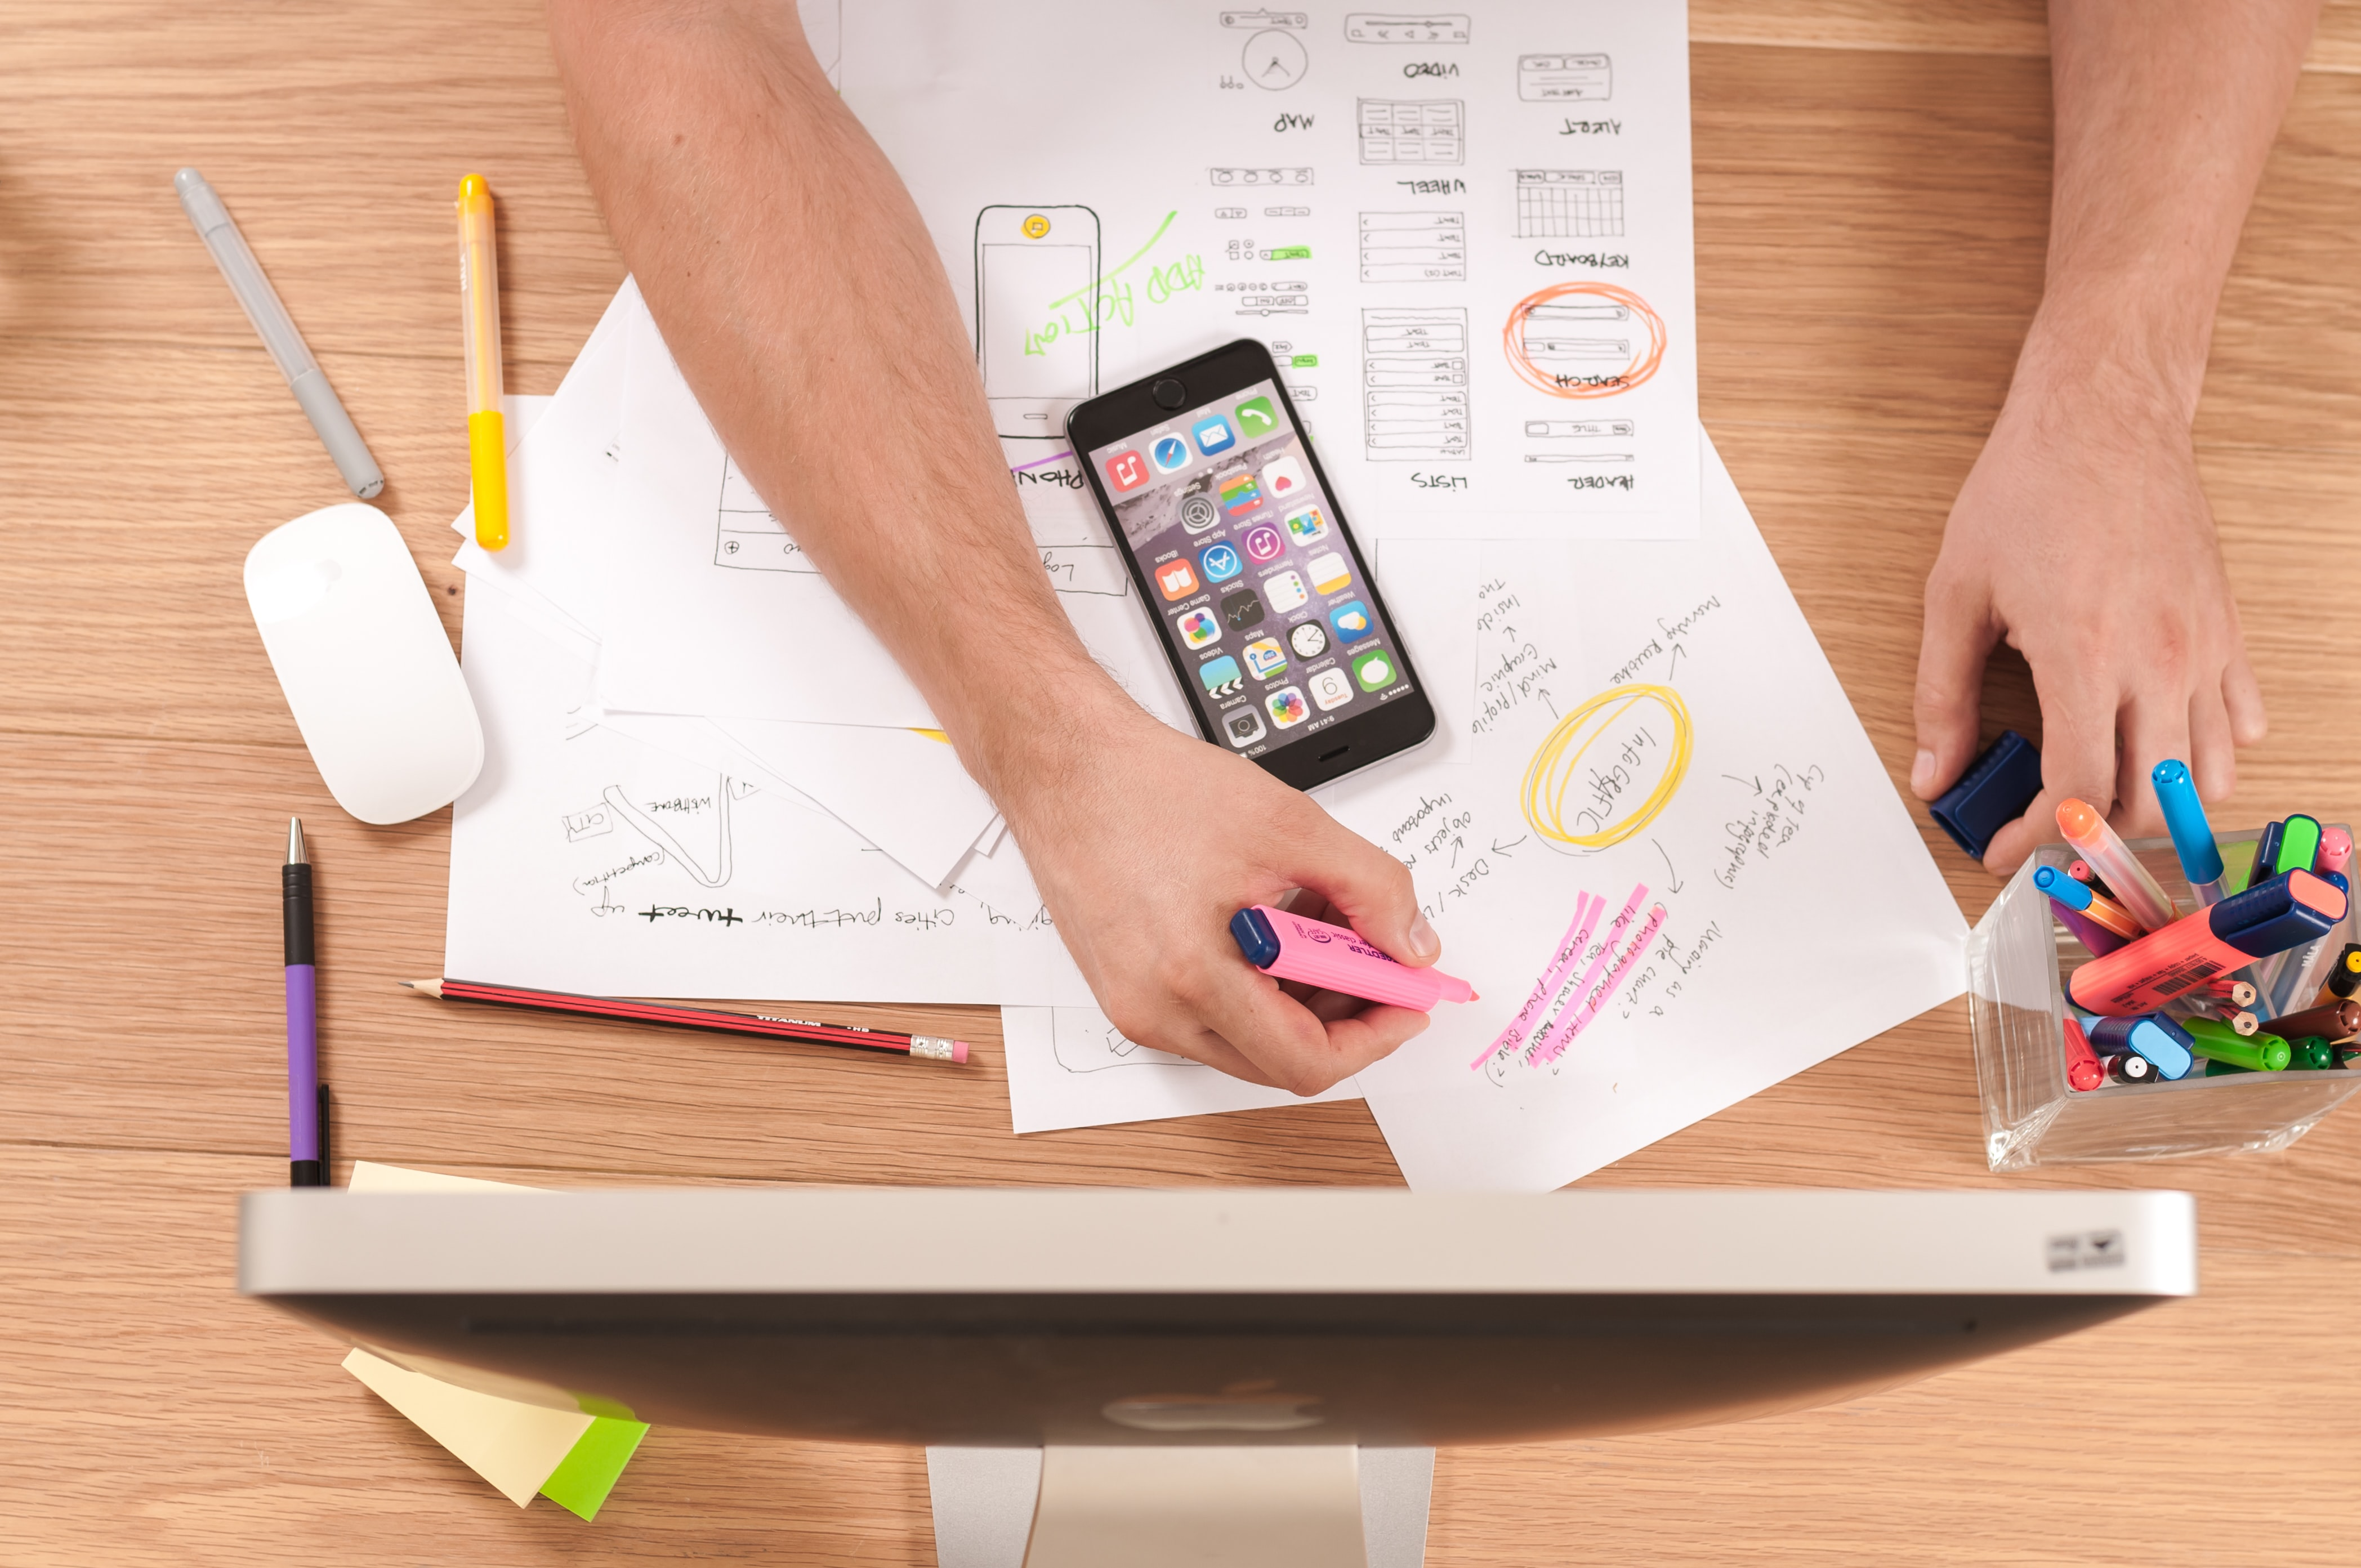 Draft your business plan and launch strategy